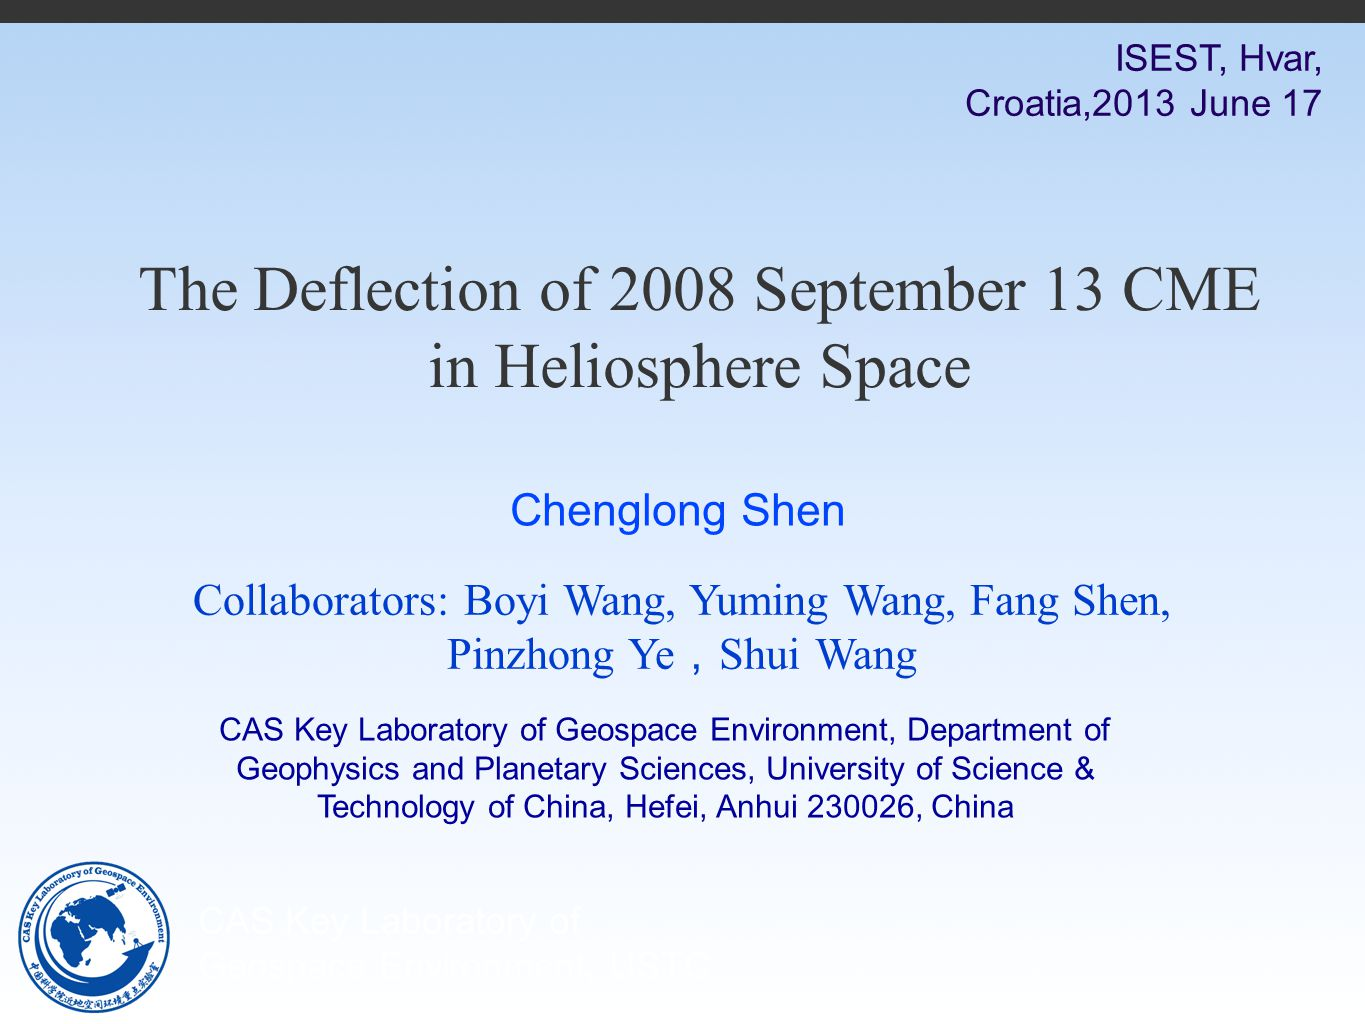 CAS Key Laboratory of Geospace Environment, USTC The Deflection of 2008 September 13 CME in Heliosphere Space ISEST, Hvar, Croatia,2013 June 17 Collaborators: Boyi Wang, Yuming Wang, Fang Shen, Pinzhong Ye , Shui Wang CAS Key Laboratory of Geospace Environment, Department of Geophysics and Planetary Sciences, University of Science & Technology of China, Hefei, Anhui 230026, China Chenglong Shen